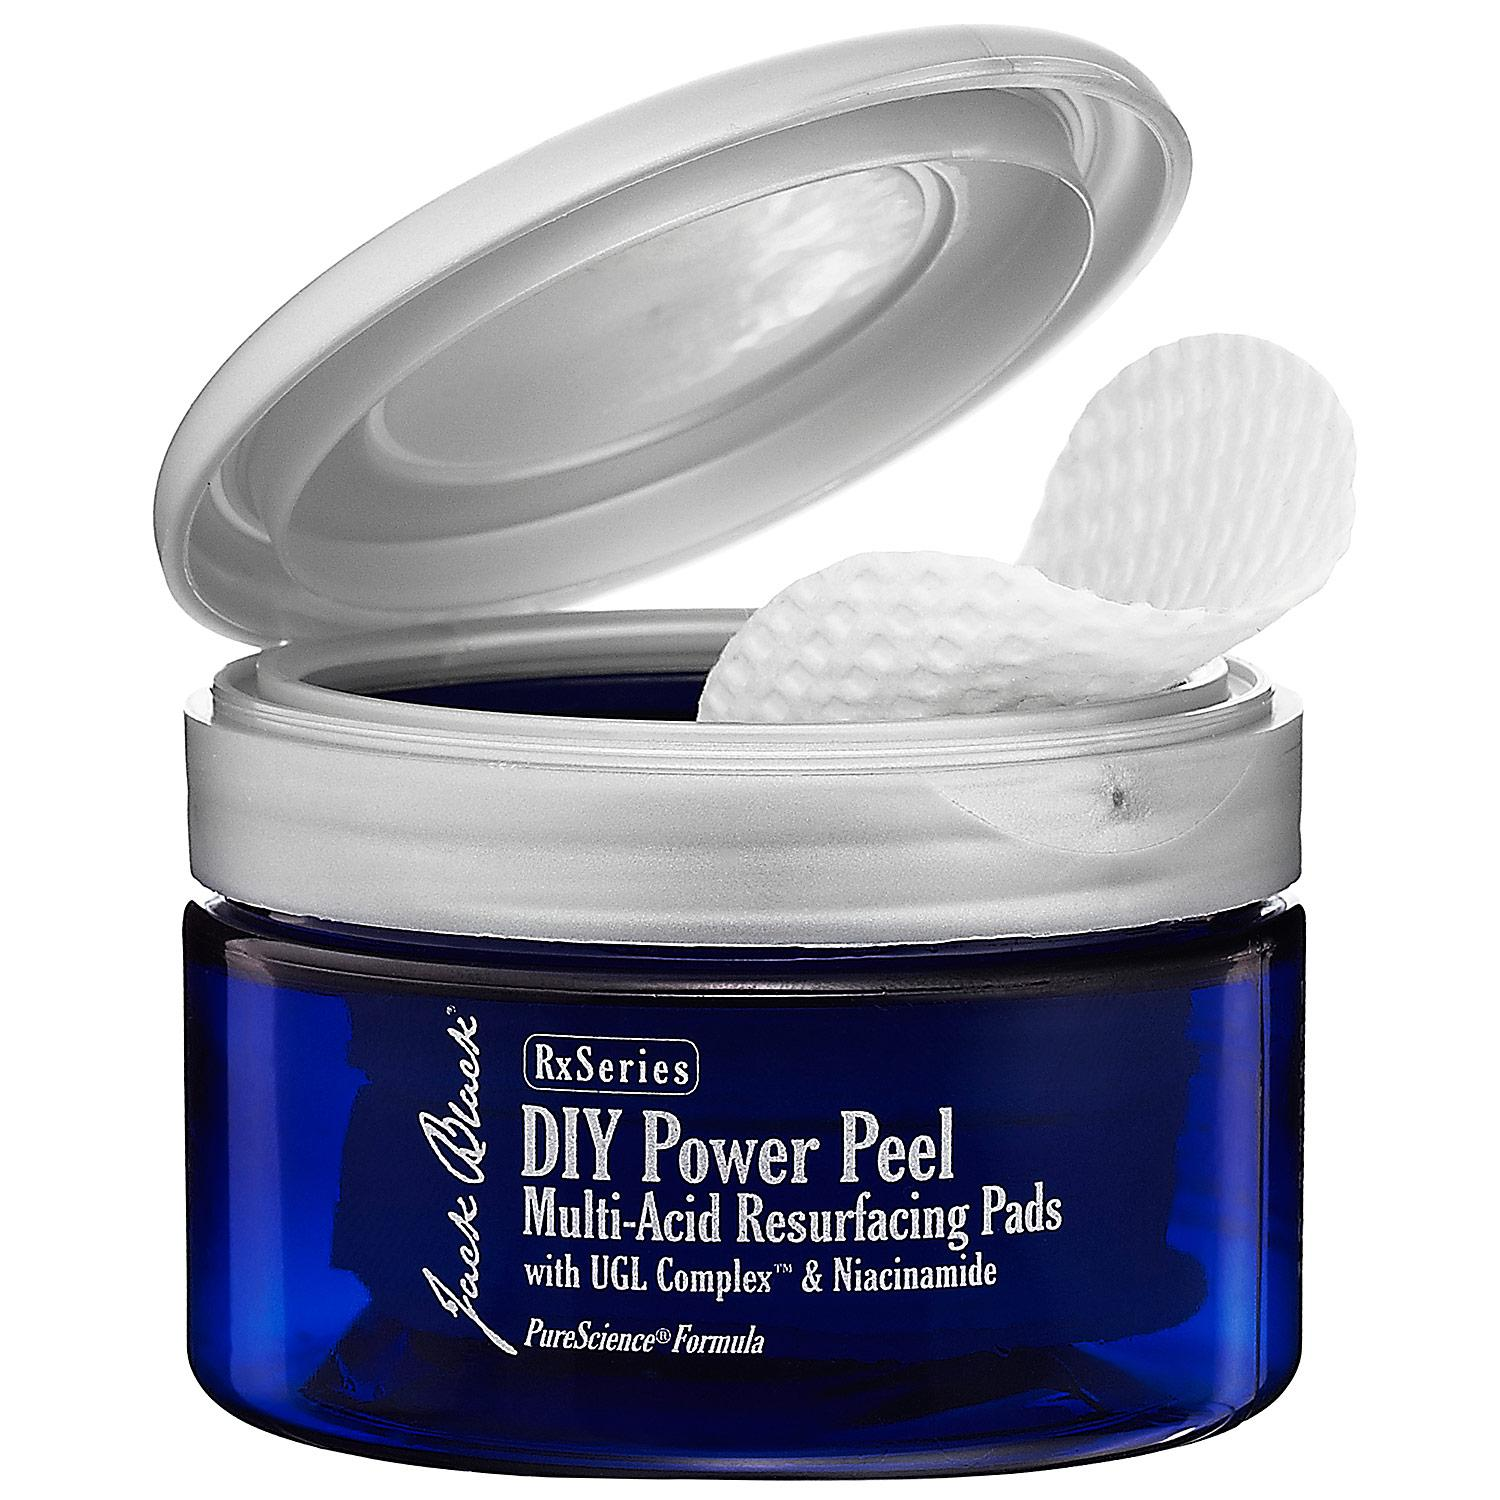 Rx Series DIY Power Peel Multi-Acid Resurfacing Pads